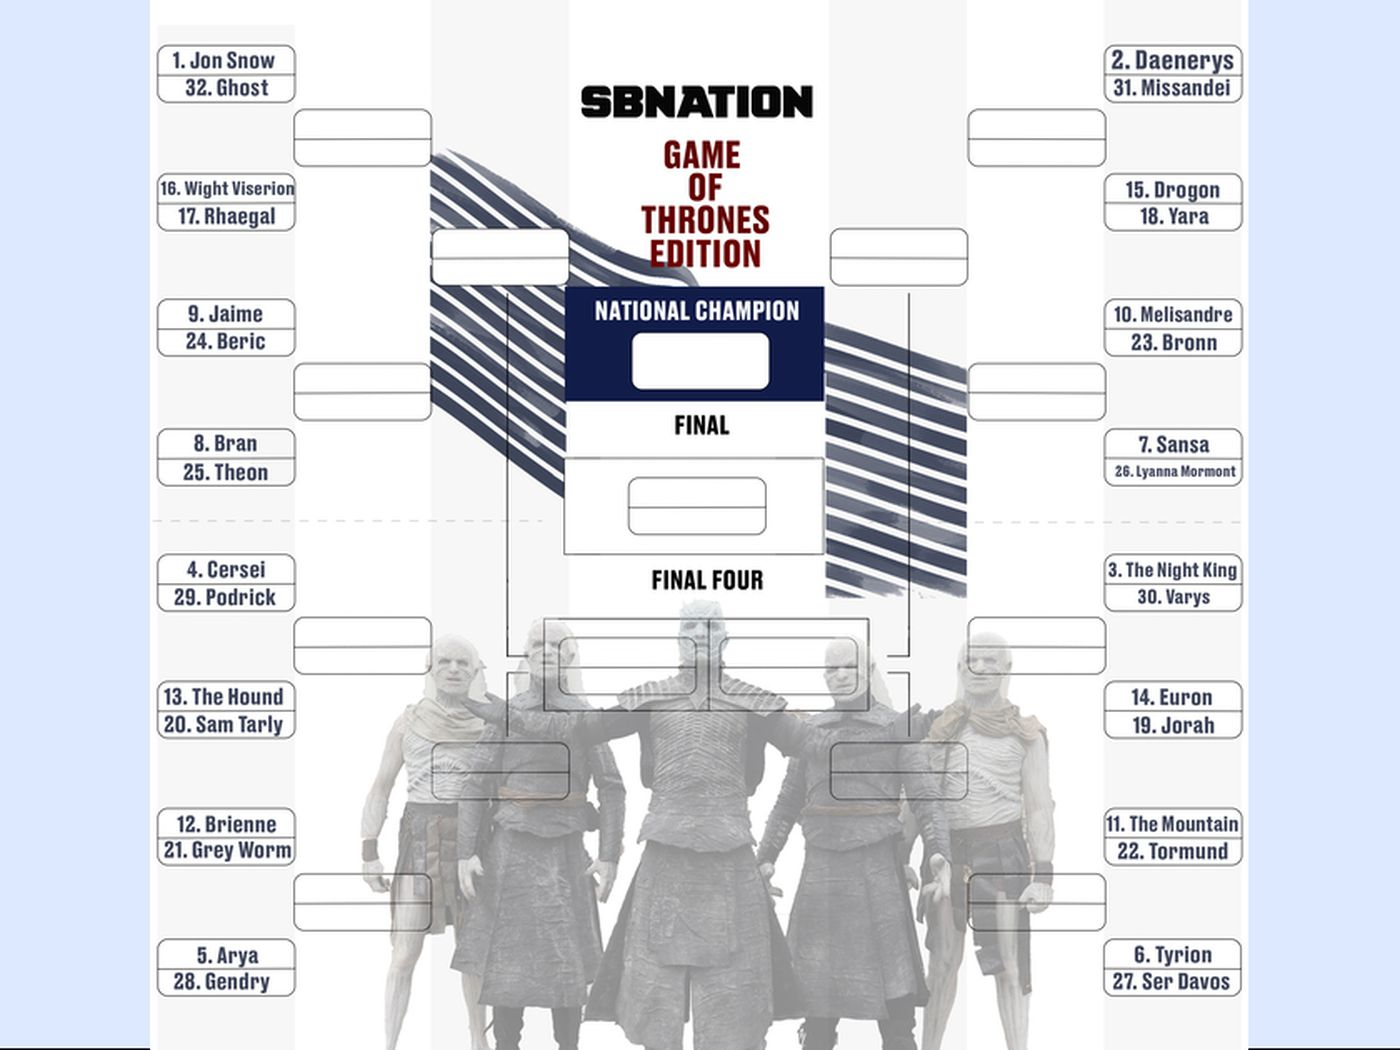 Game Of Thrones Bracket 2019 March Madness Determines Iron Throne